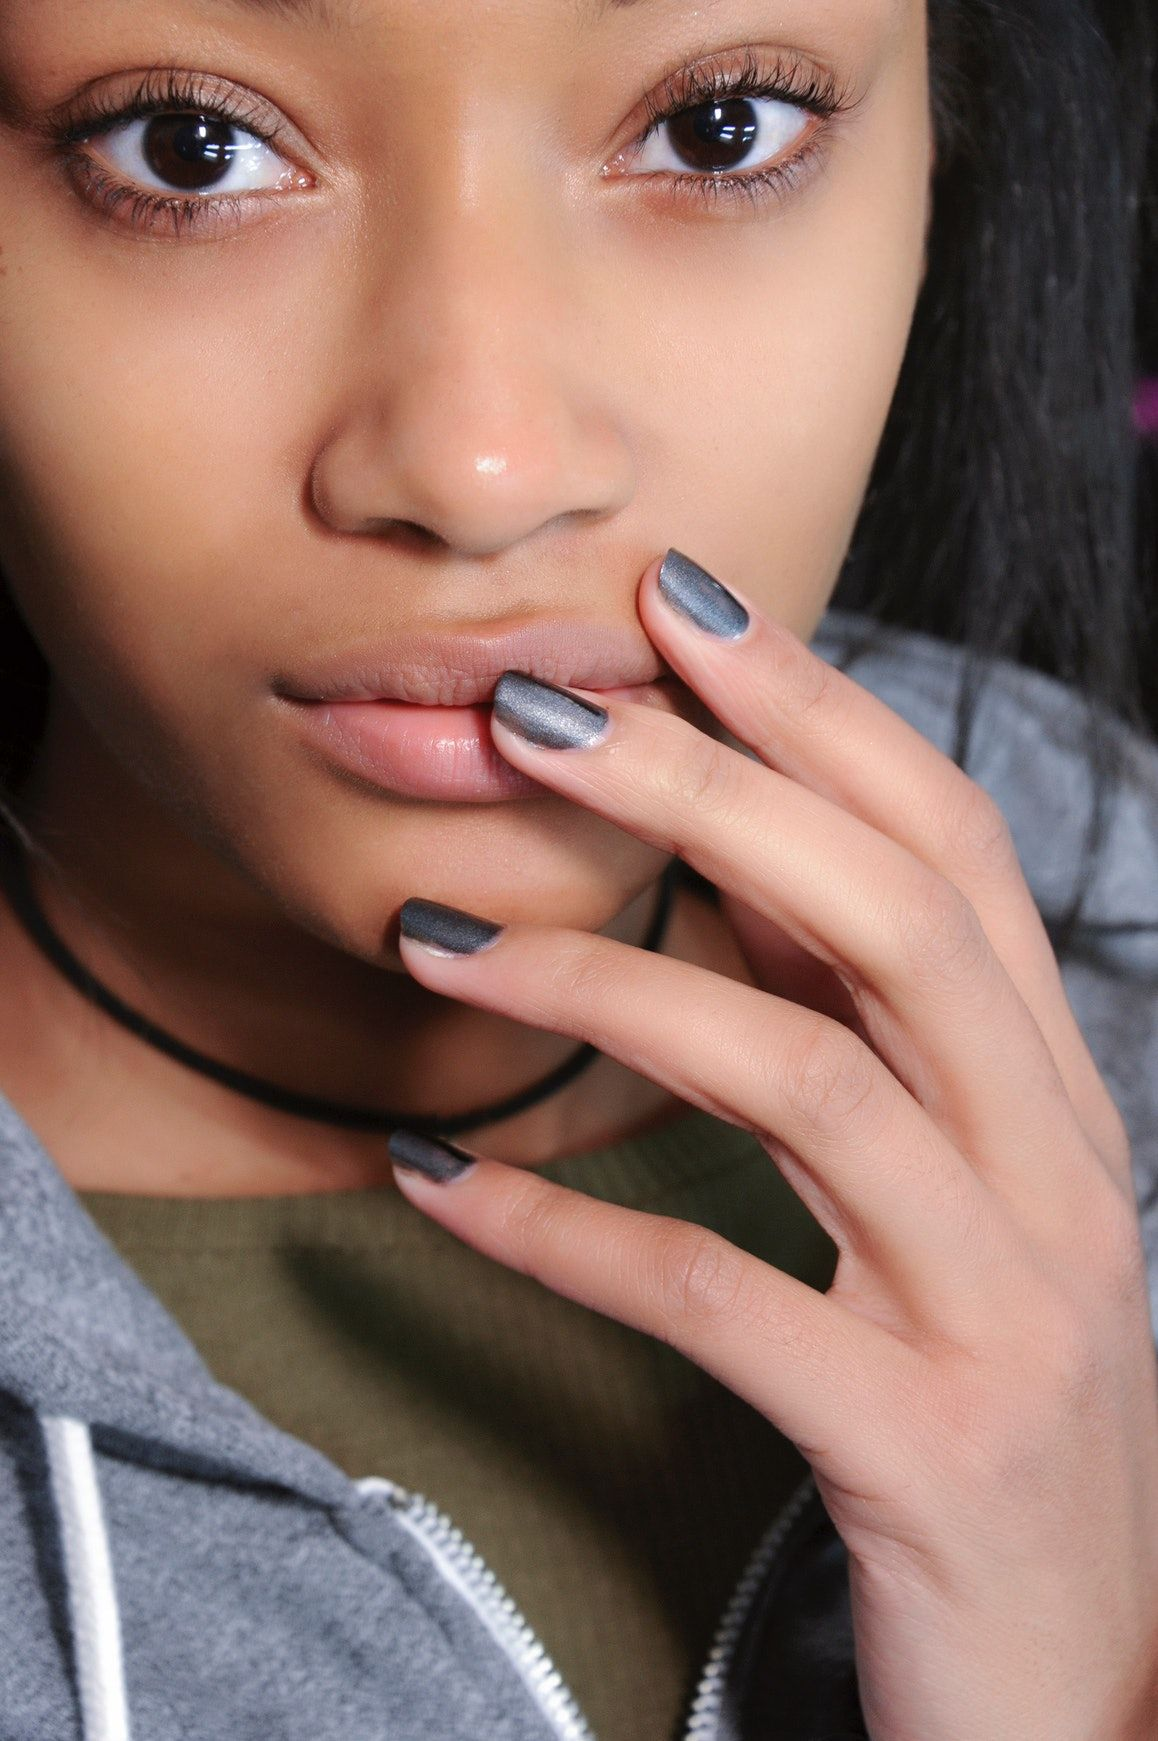 8 Cool Nail Color Ideas For The New Year in 2020 Nail